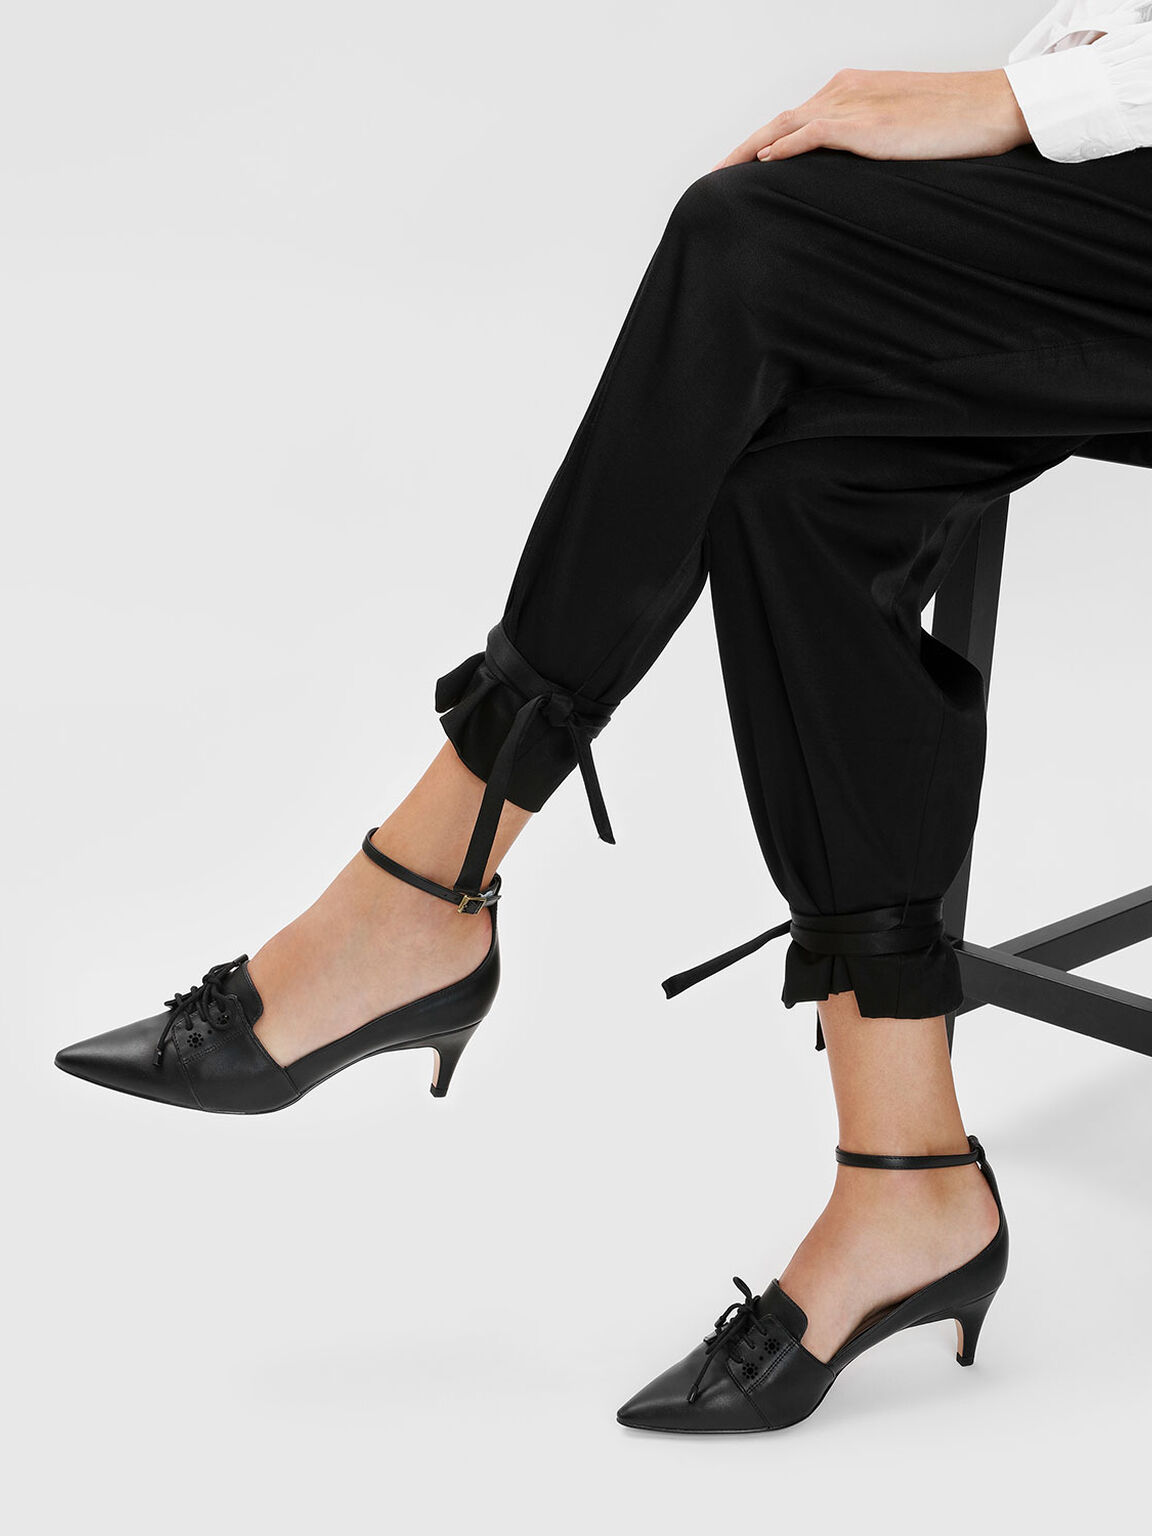 Lace Up Ankle Strap Pointed Heels, Black, hi-res